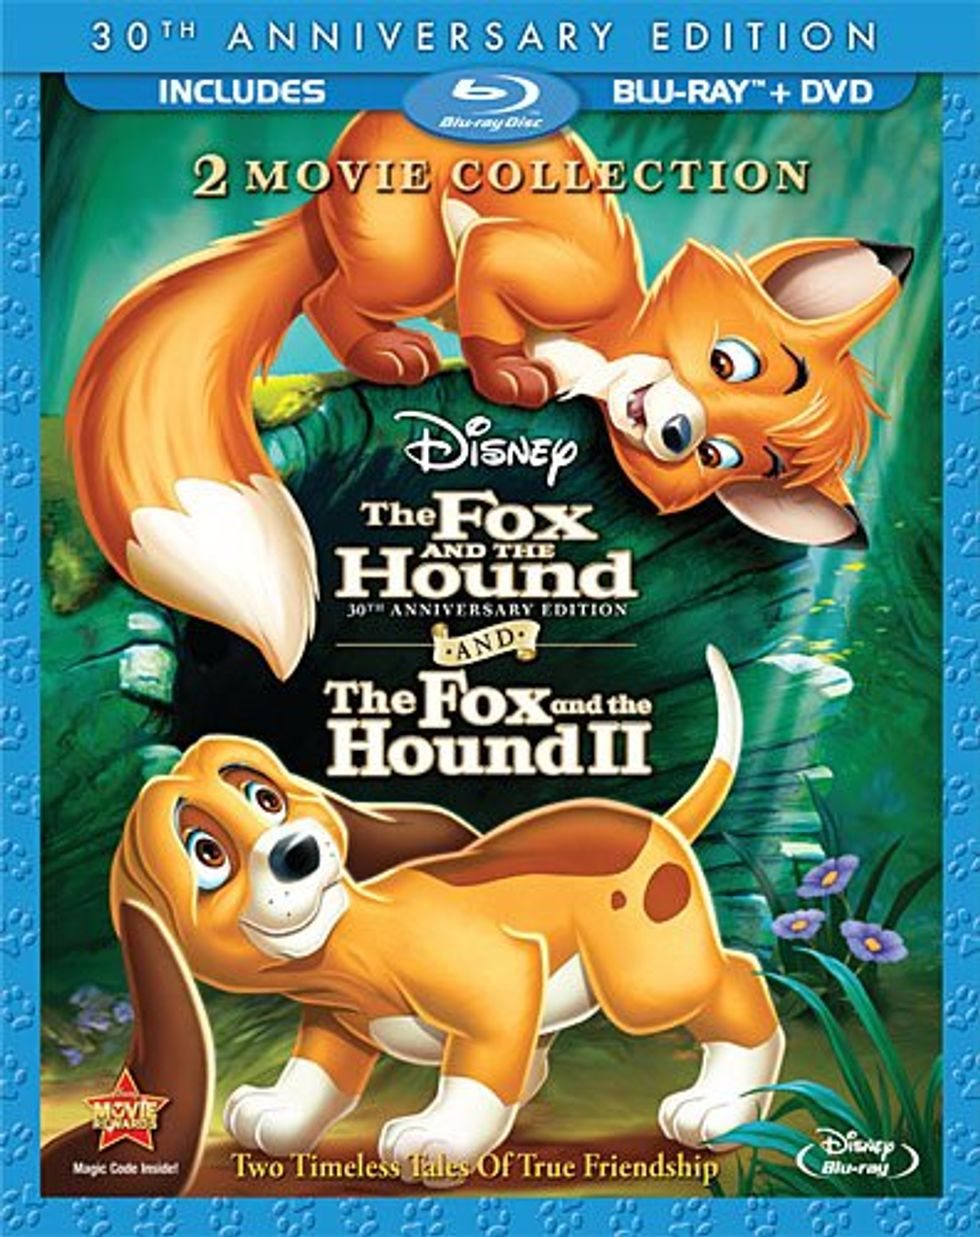 Disney's Sweet The Fox and the Hound On Blu-ray